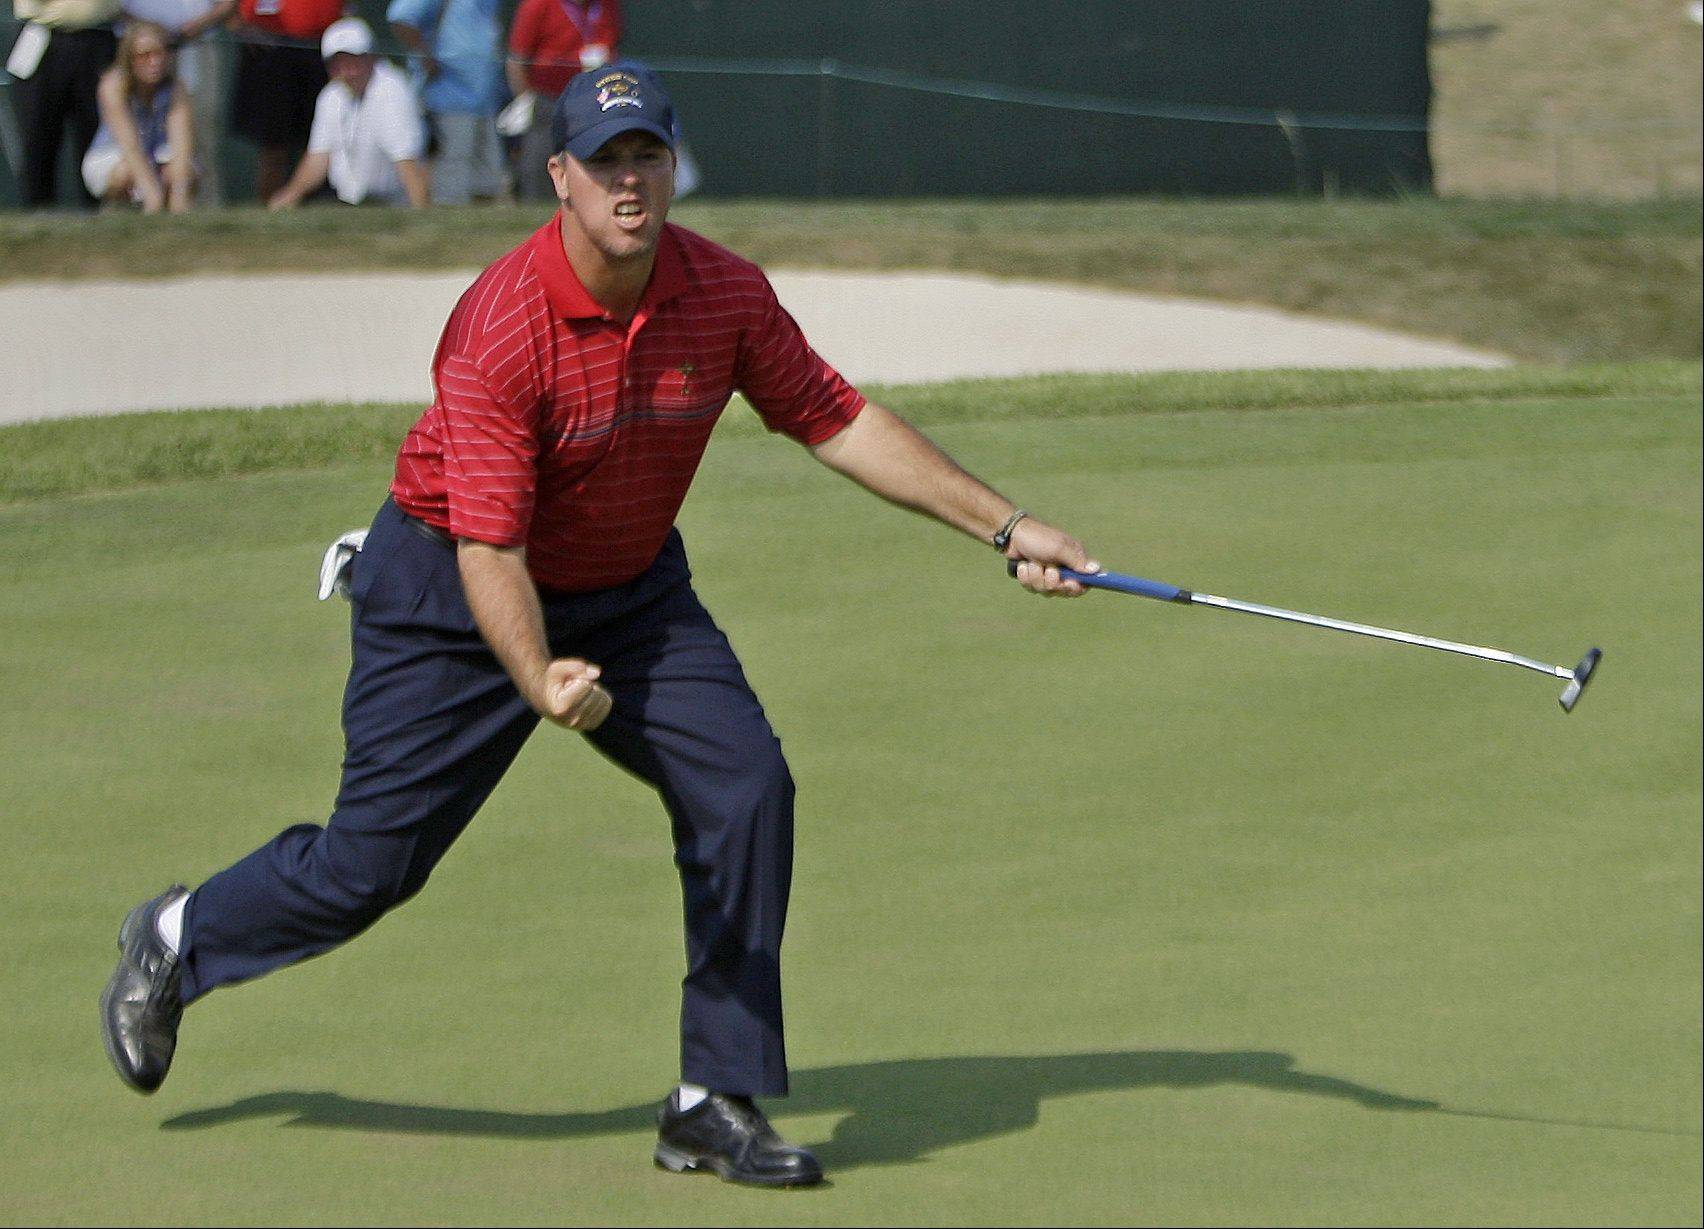 USA�s Boo Weekley reacts after sinking a putt on the ninth hole during the final round of the Ryder Cup golf tournament at the Valhalla Golf Club, in Louisville, Ky., Sunday, Sept. 21, 2008. The colorful rookie character Weekley fueled an American victory.